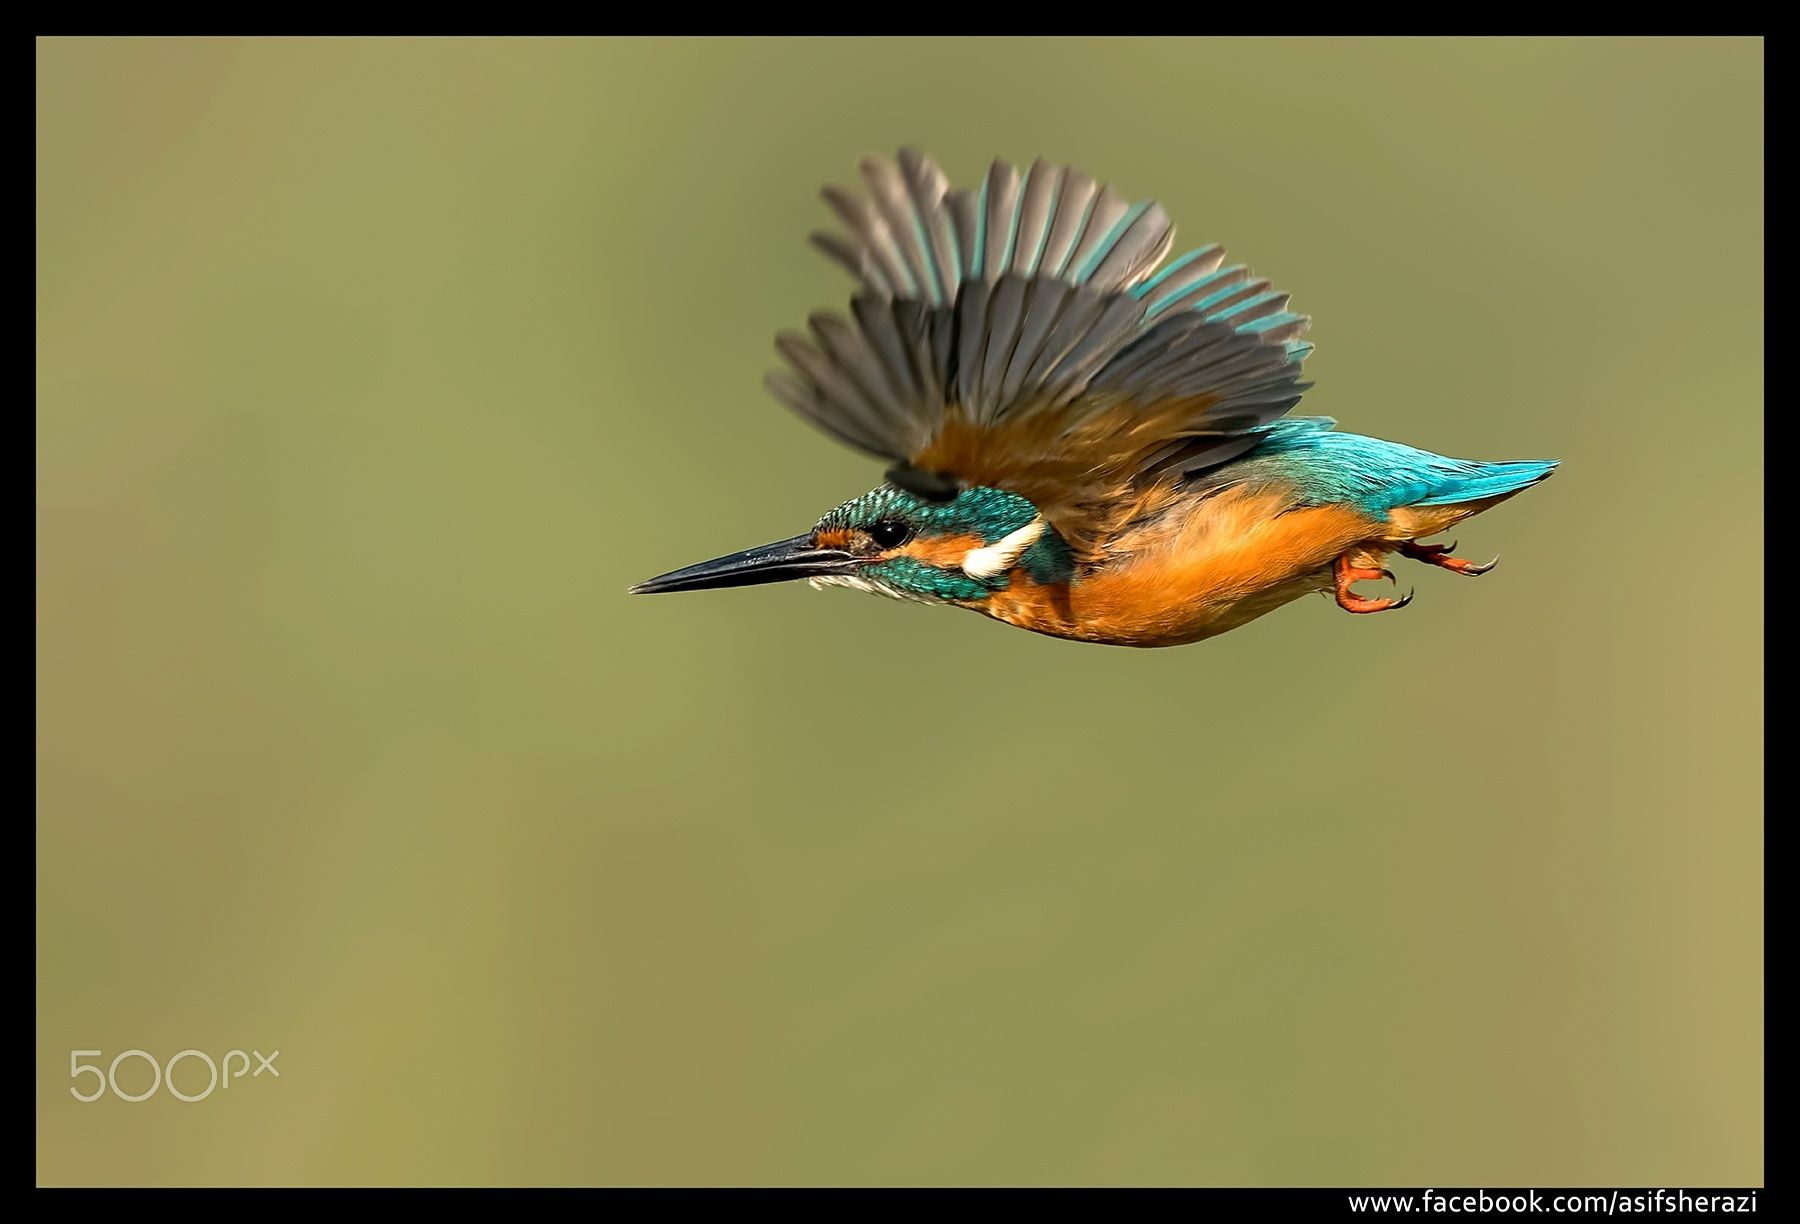 Beauty of The Nature - Common Kingfisher Multan, Pakistan.